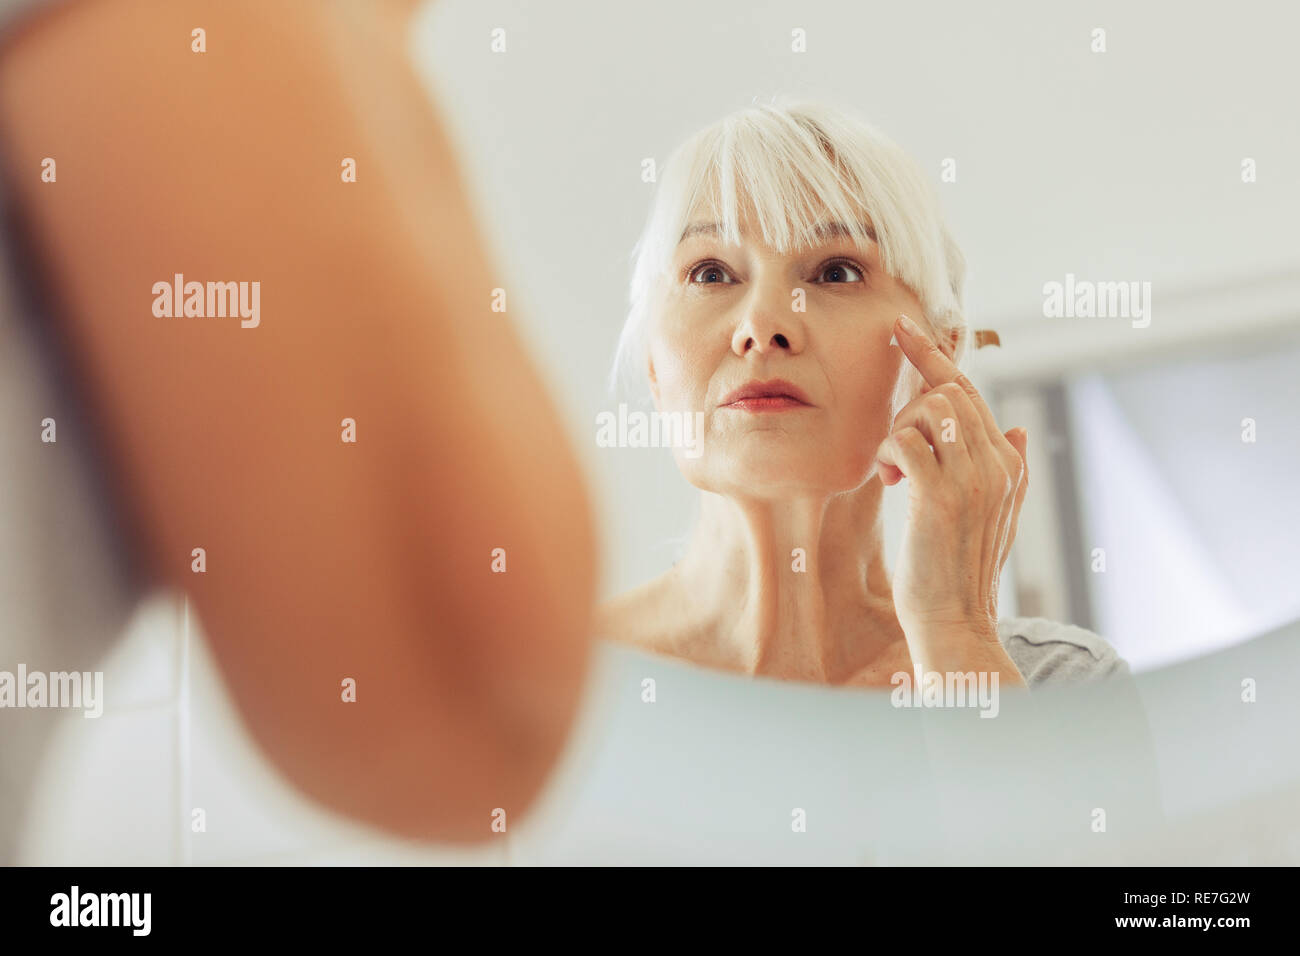 Mirror reflection of a nice aged woman - Stock Image